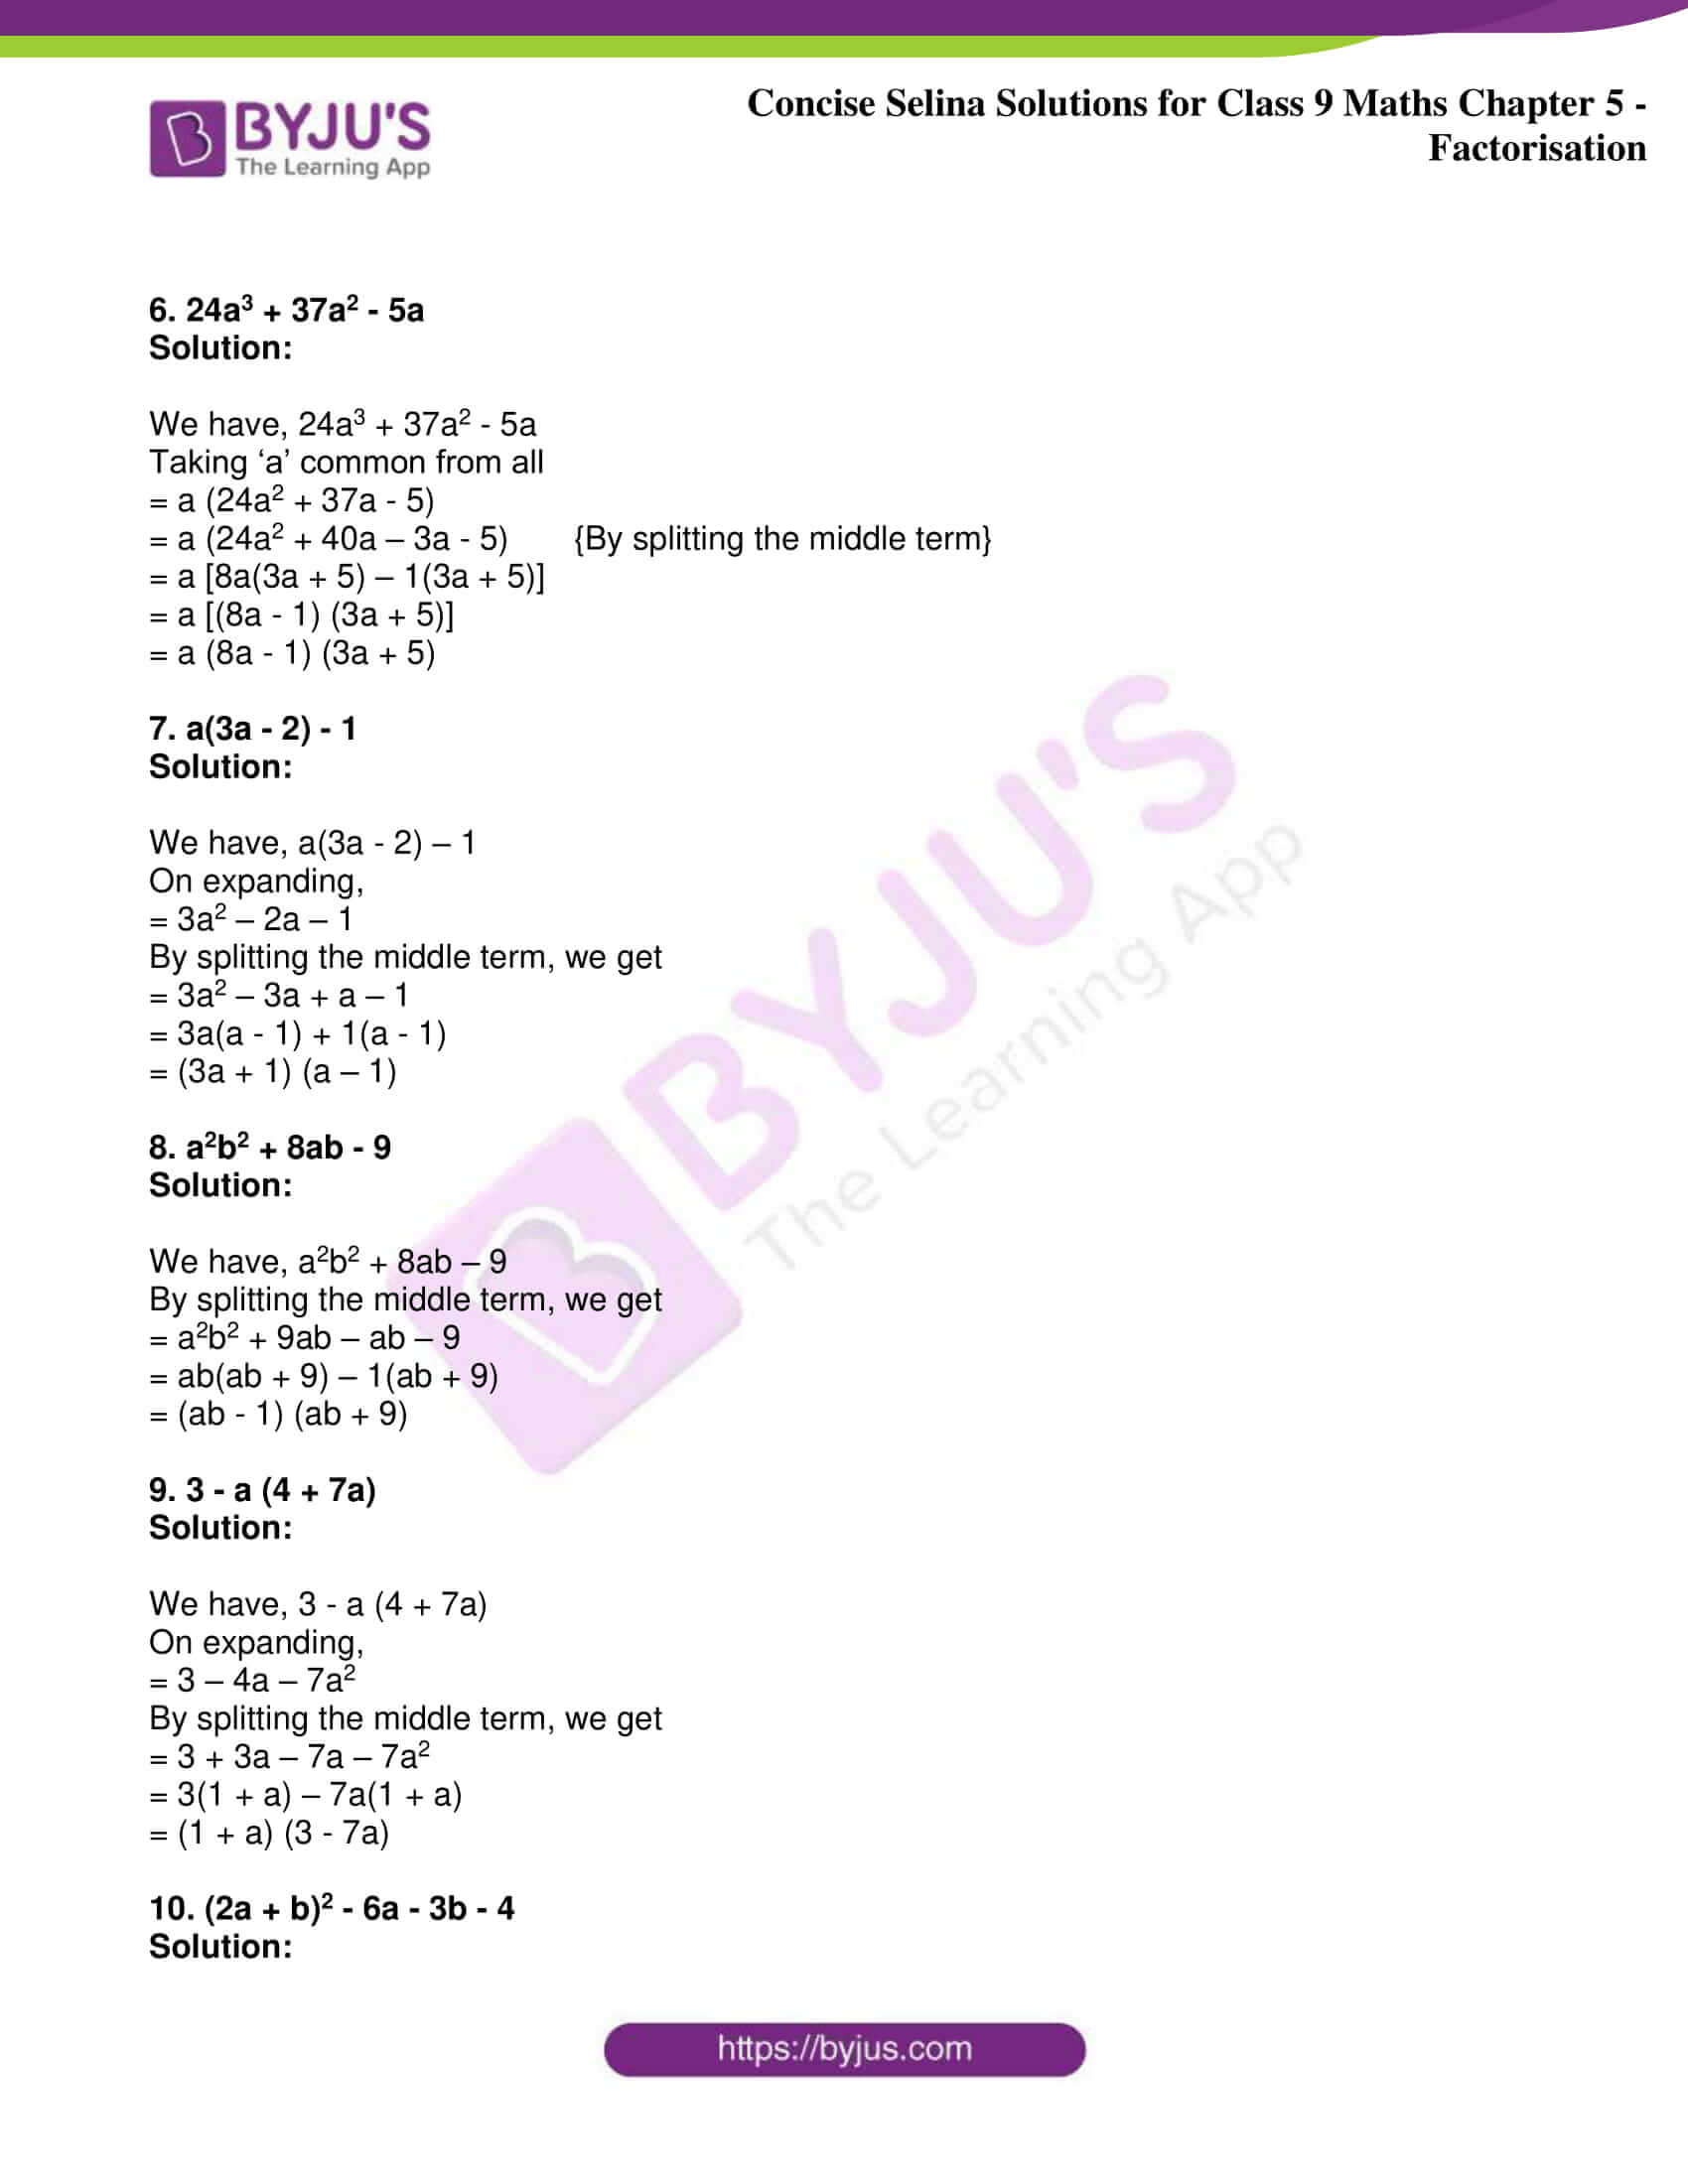 icse class 9 maths may10 selina solutions chapter 5 factorisation 07